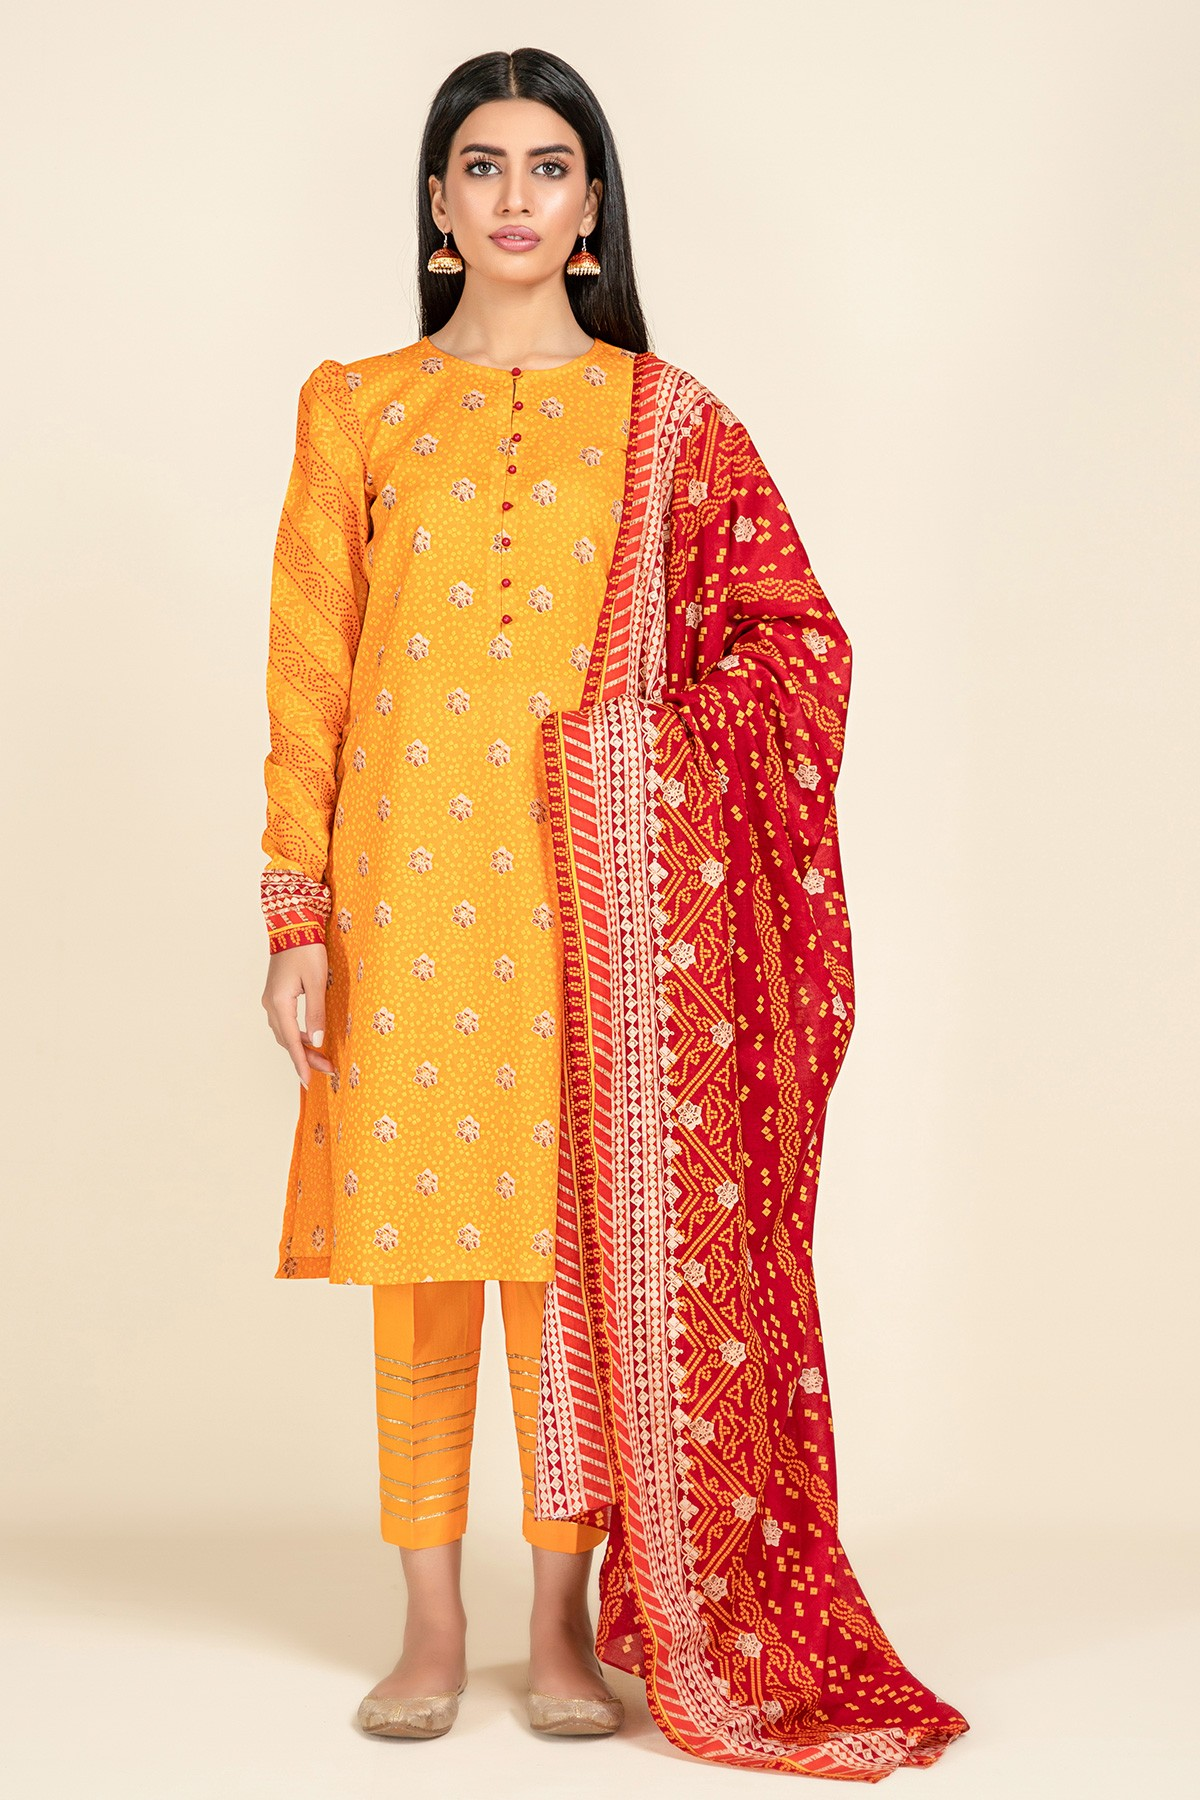 Yellow dress with red dupatta